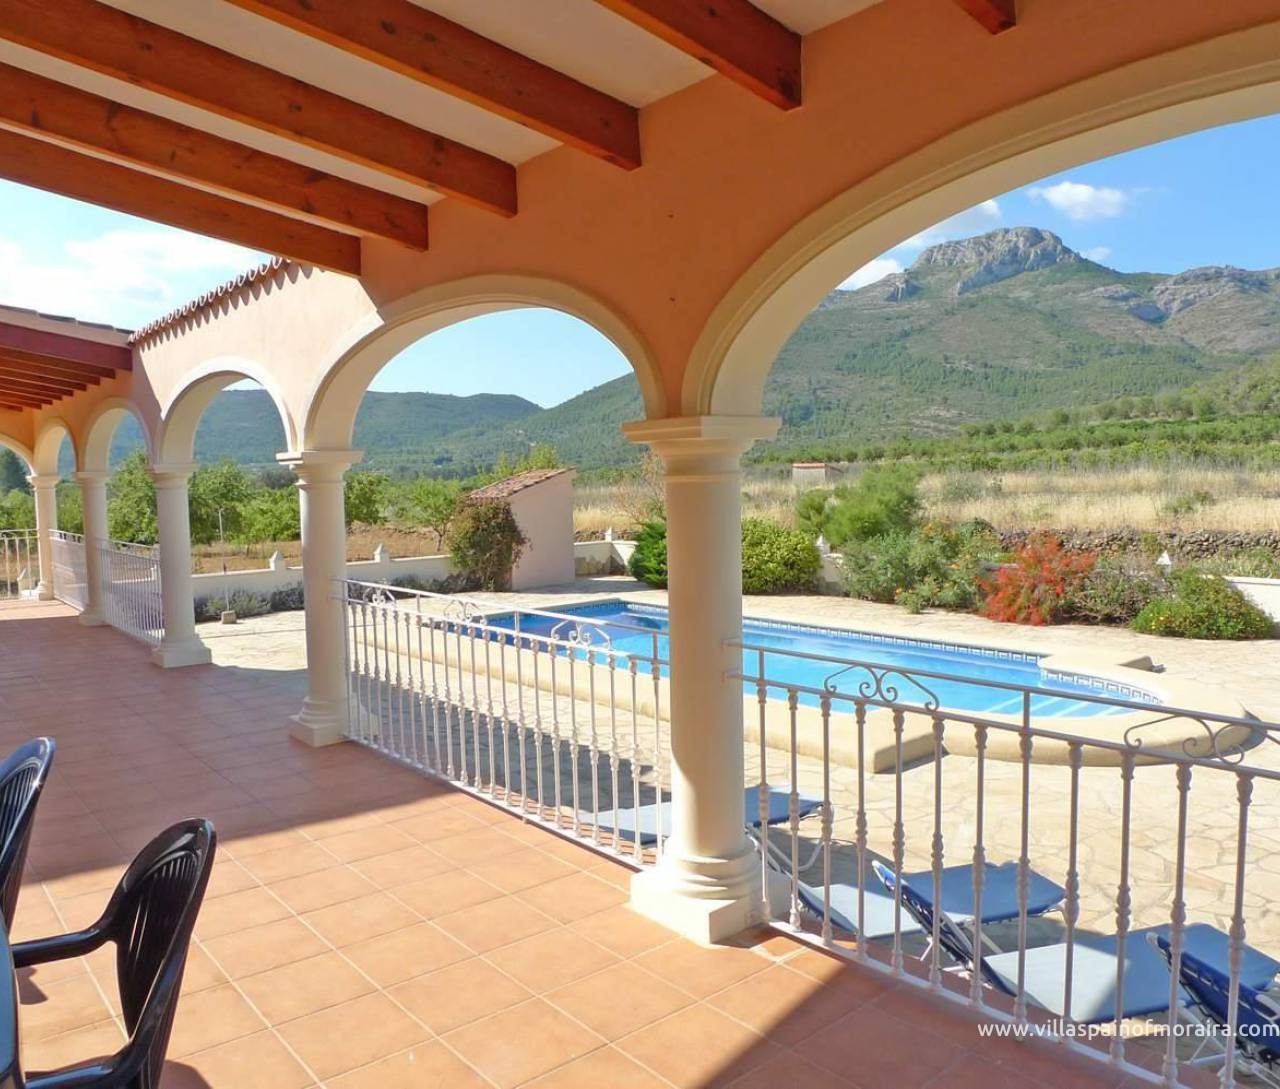 Villa for sale in Parcent Jalon Valley